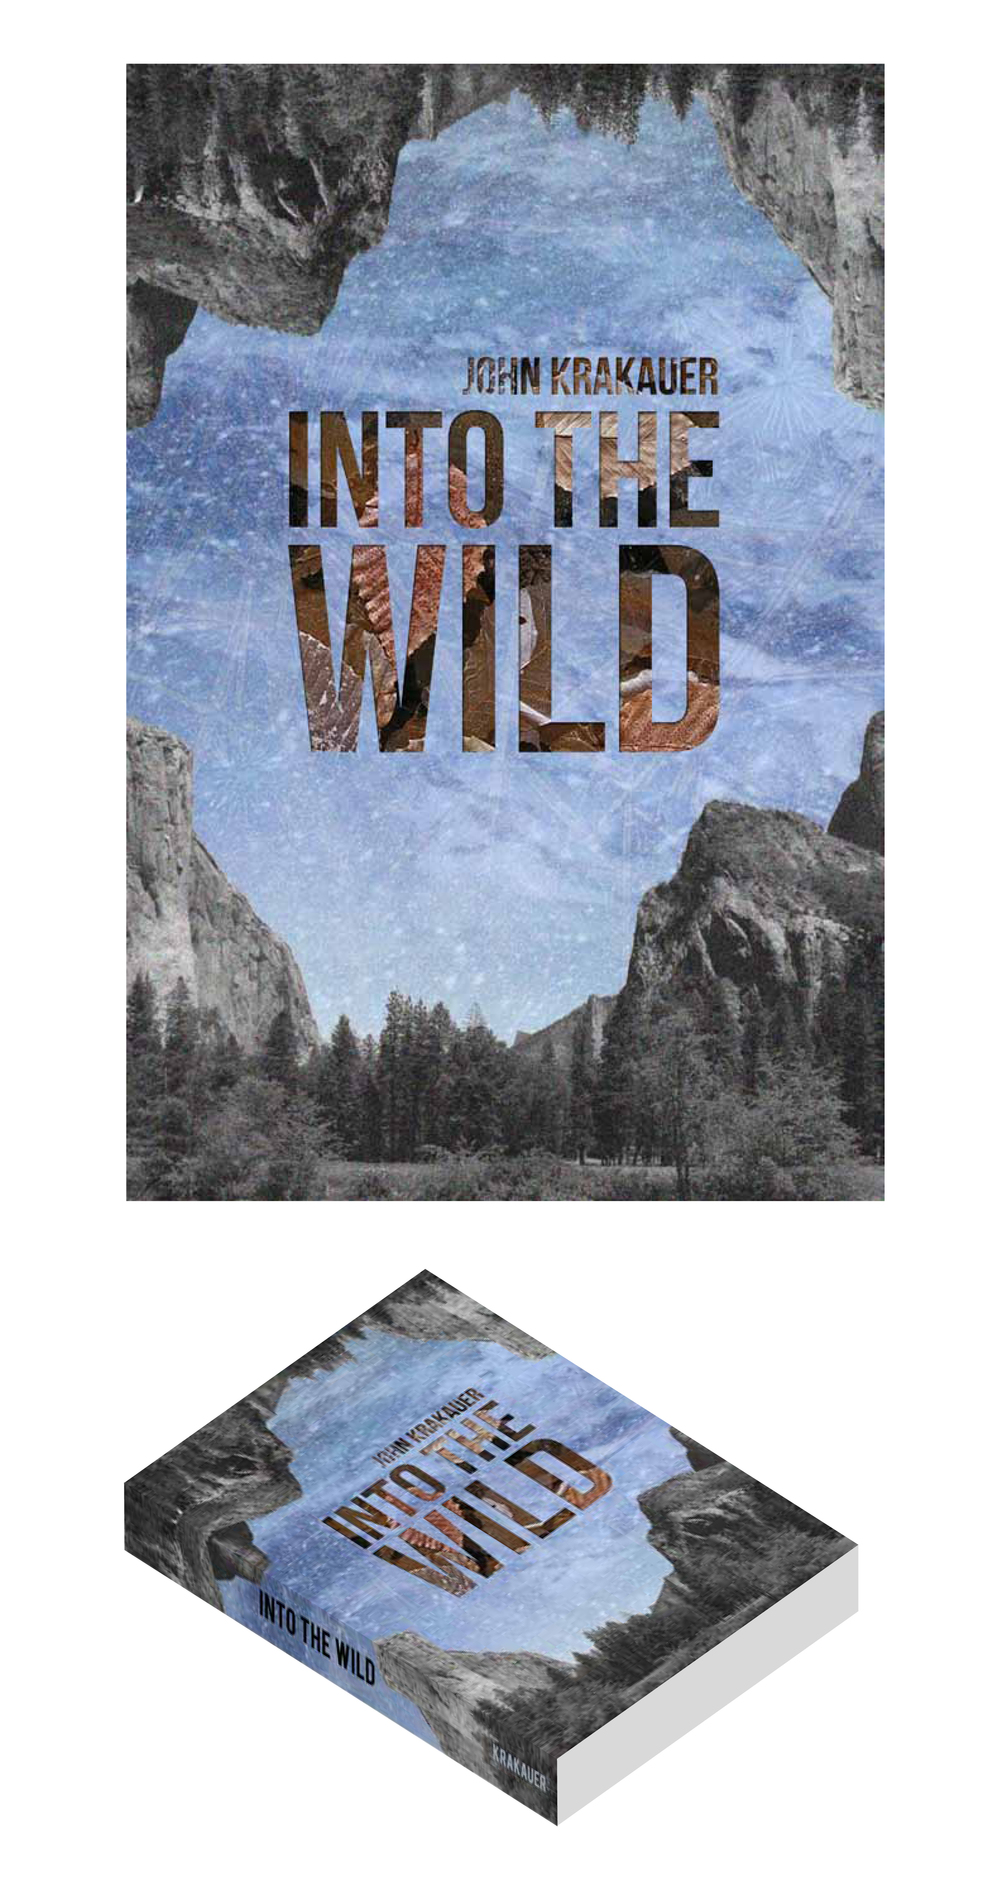 into_the_wild_cover.jpg